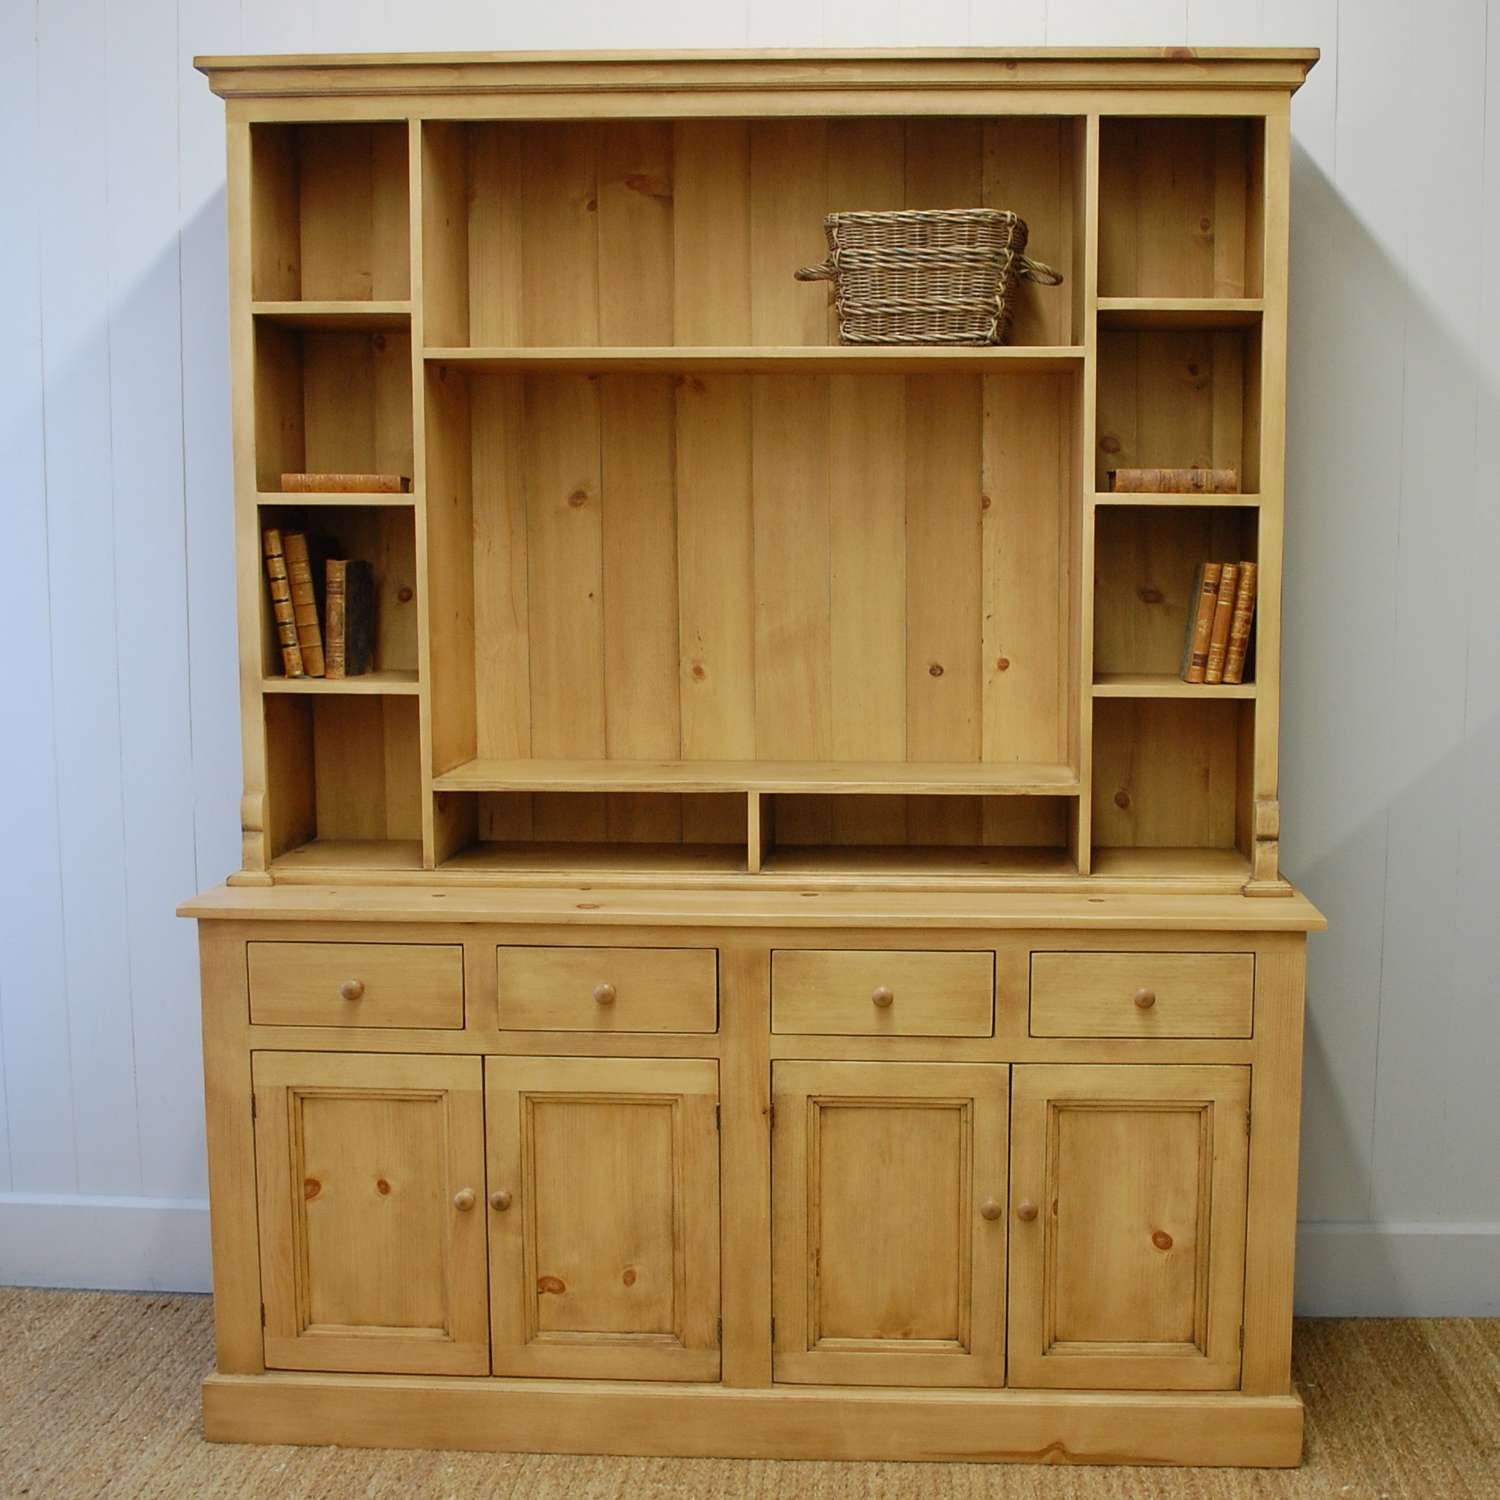 English Farmhouse Furniture Sideboards & Hutches – Layla Grayce With Regard To Sideboards And Hutches (View 5 of 20)